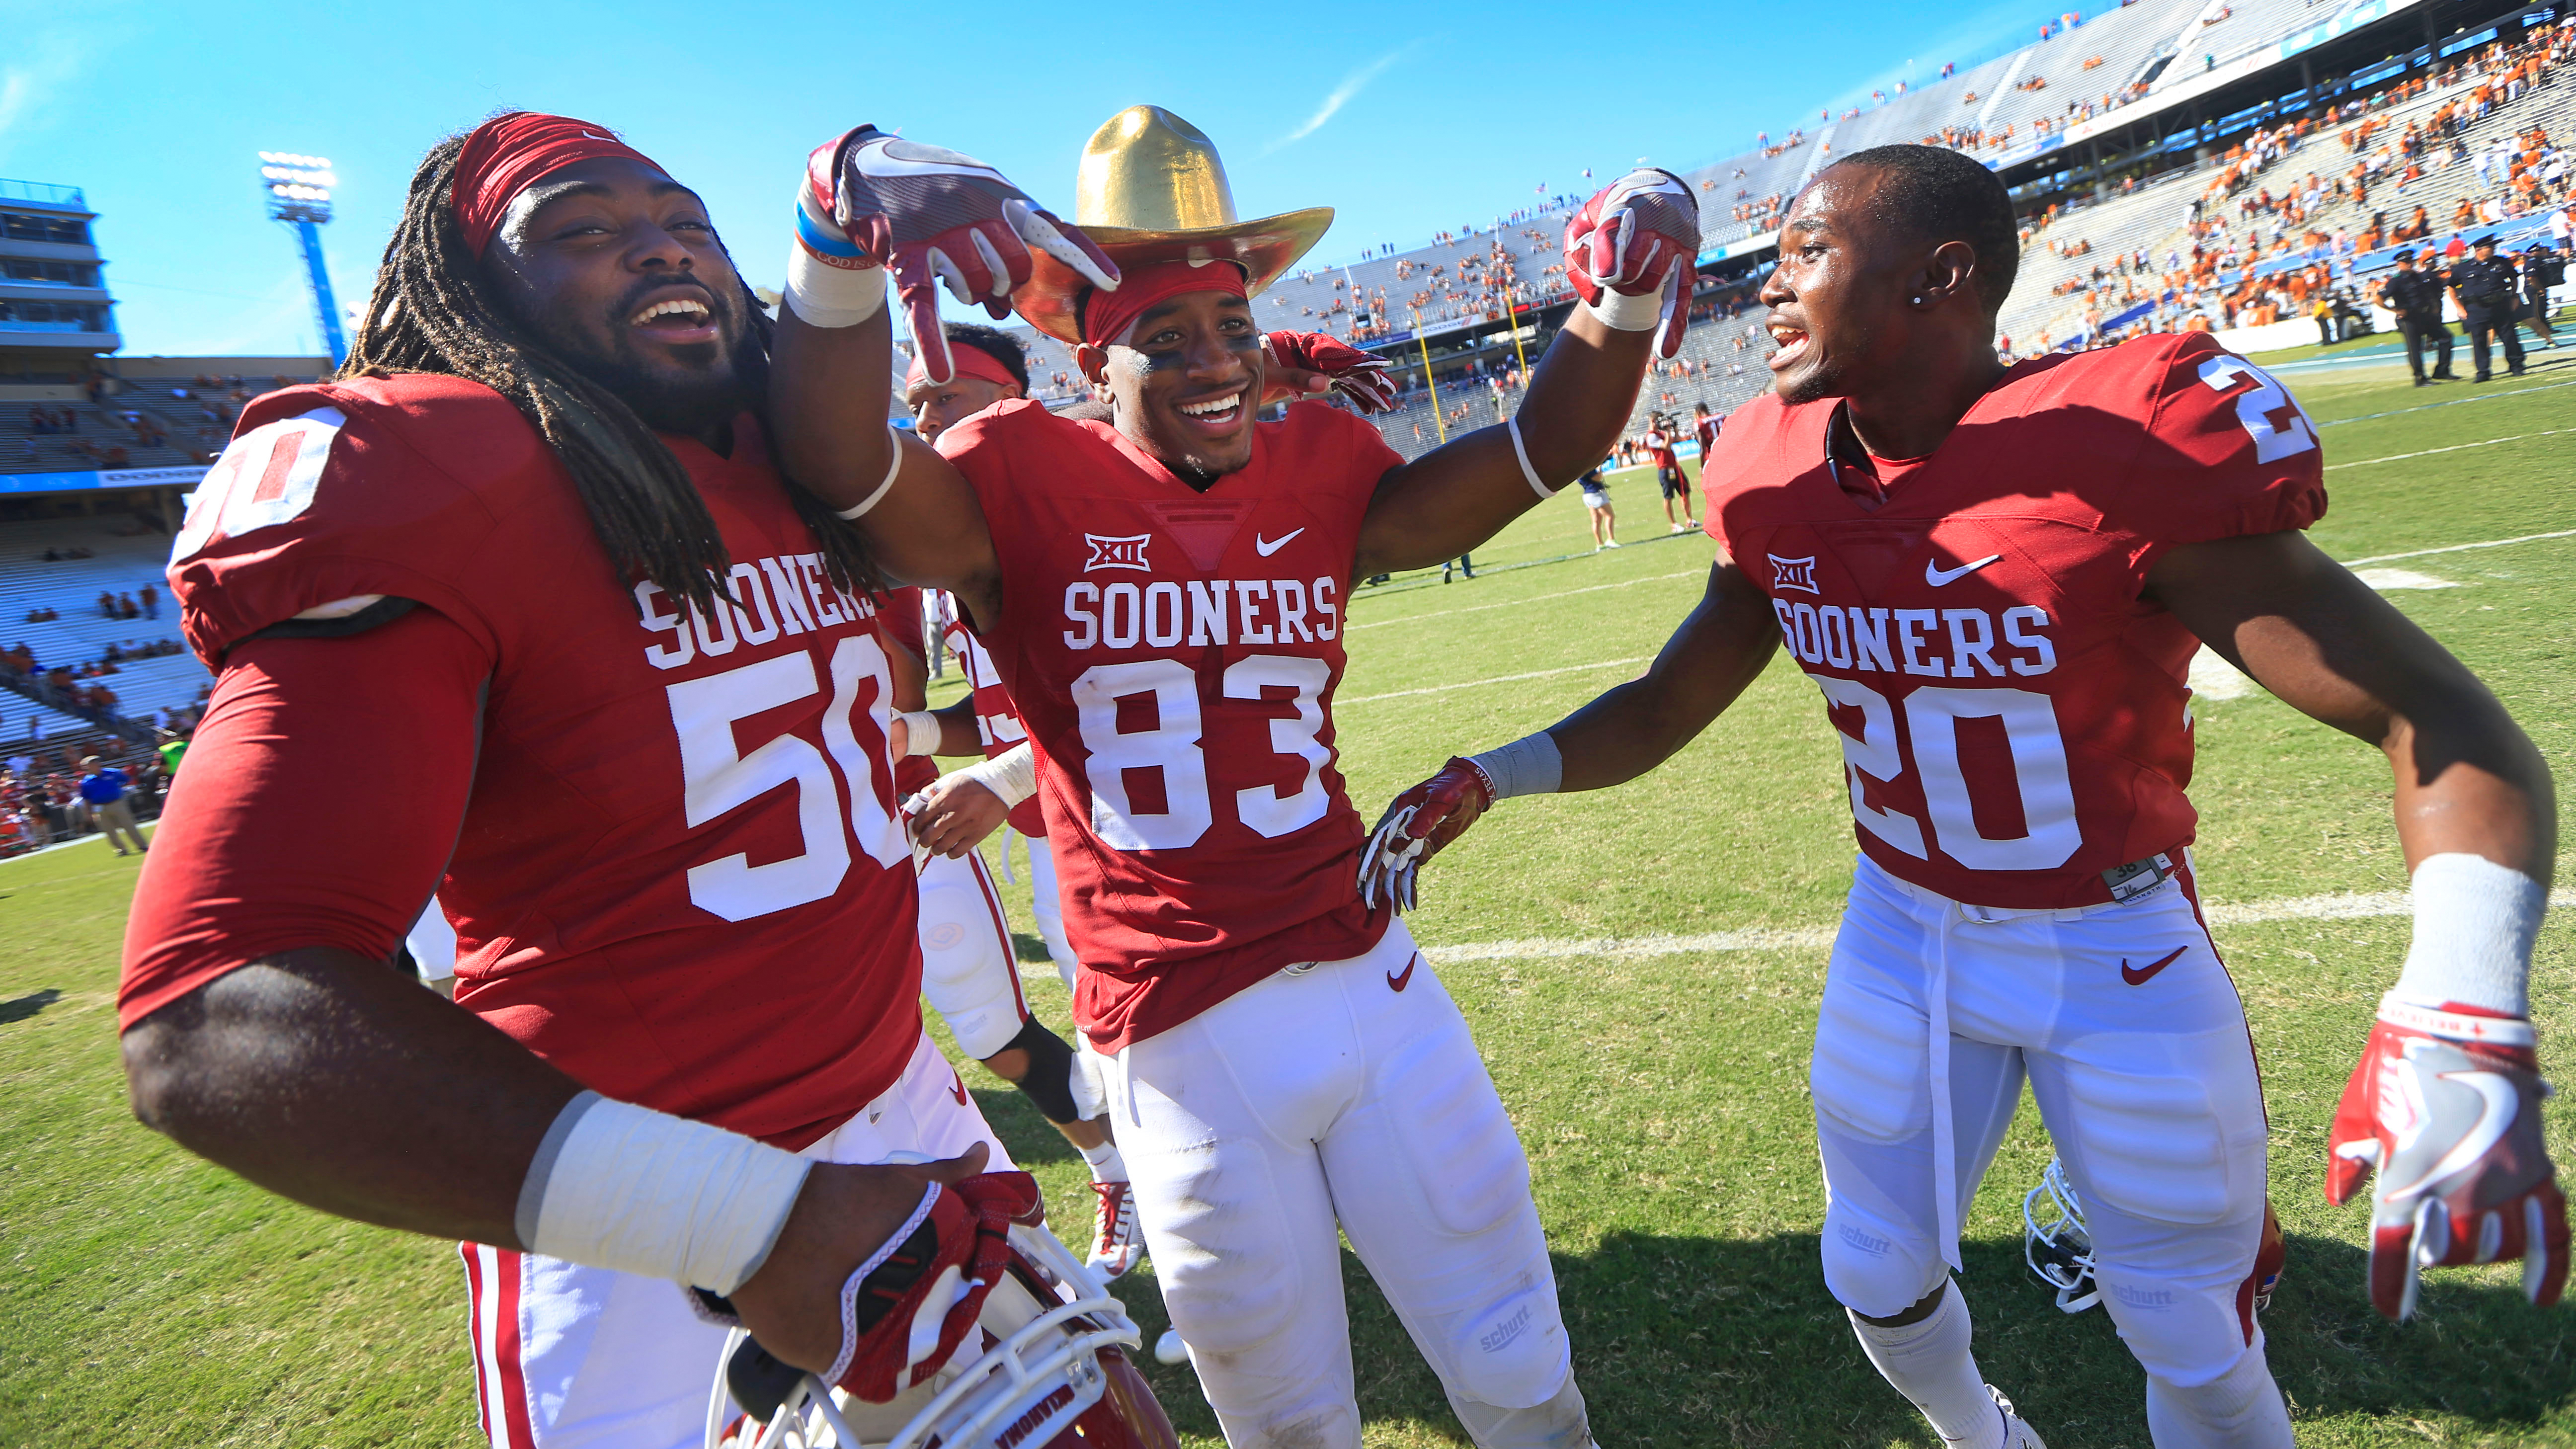 big-12-allows-'horns-down'-in-non-taunting-situations-for-2019